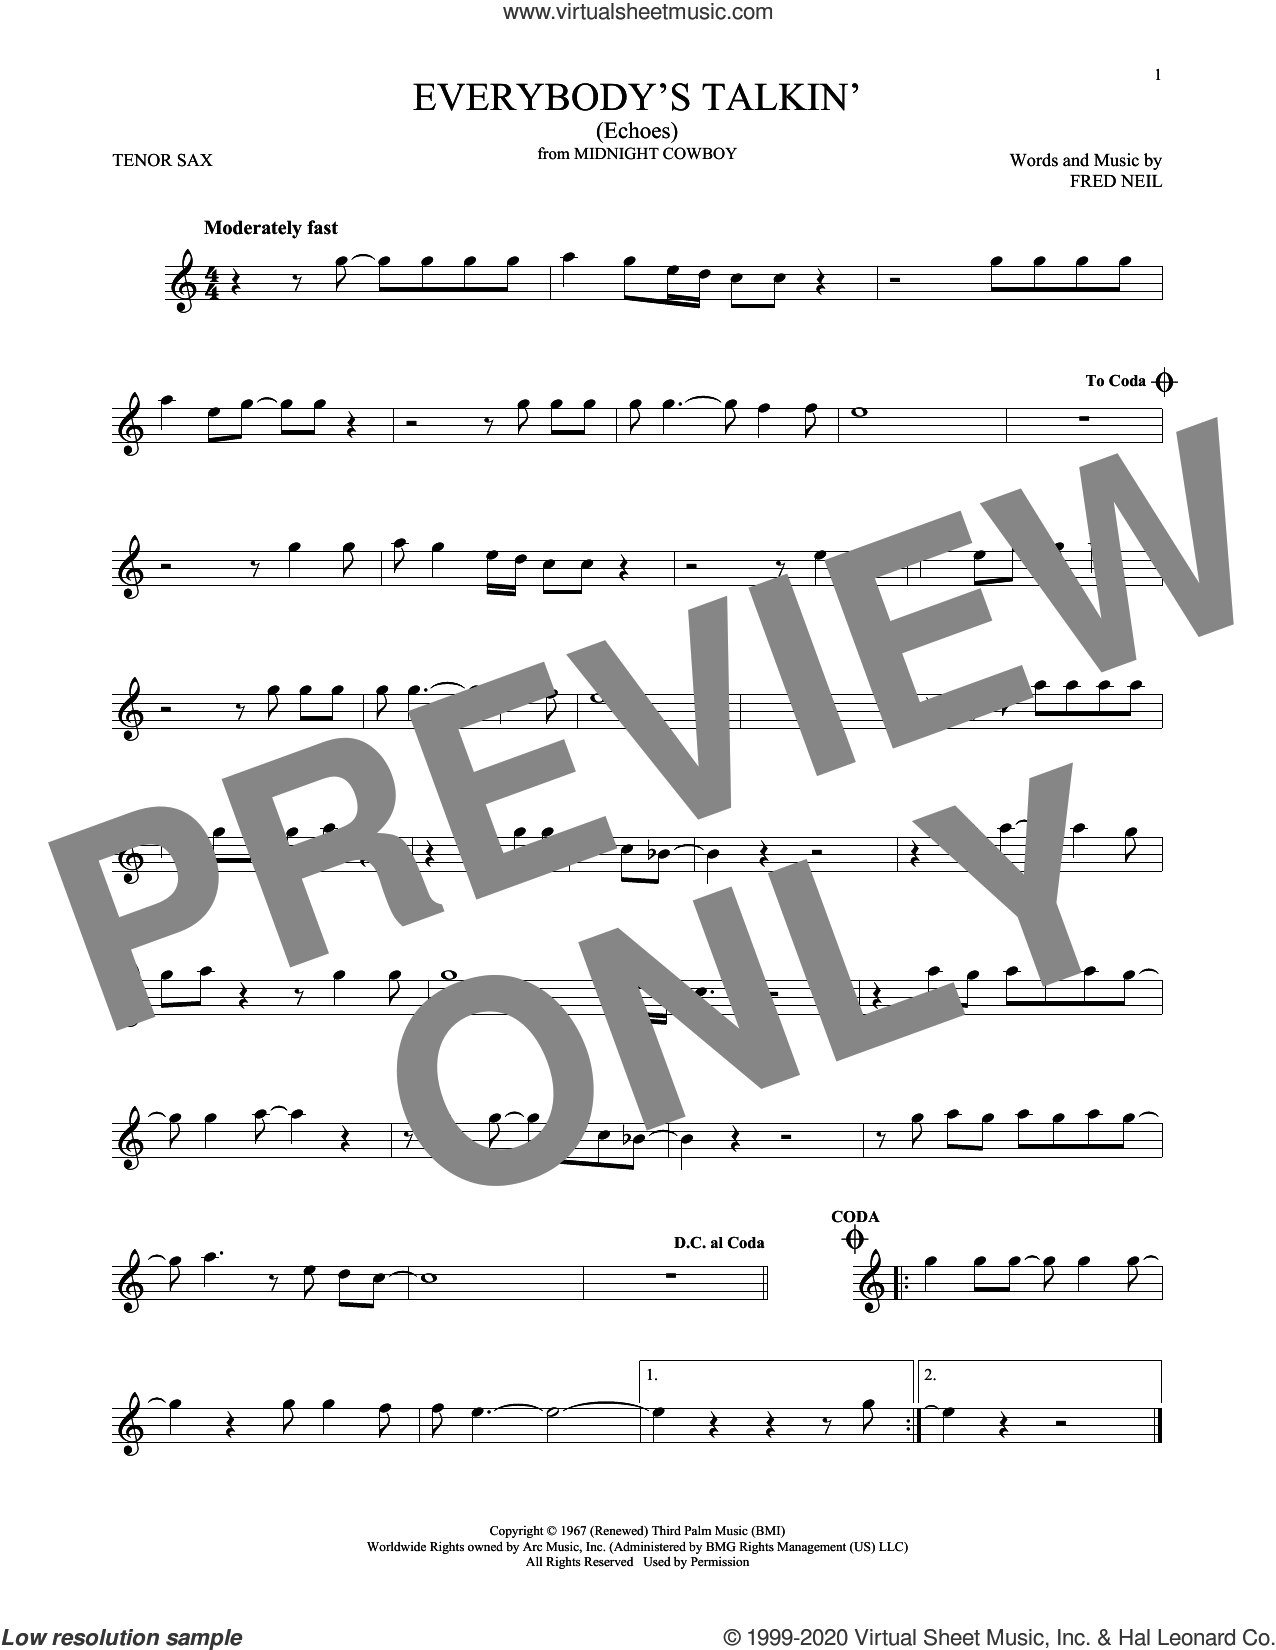 Everybody's Talkin' (Echoes) sheet music for tenor saxophone solo by Harry Nilsson and Fred Neil, intermediate skill level